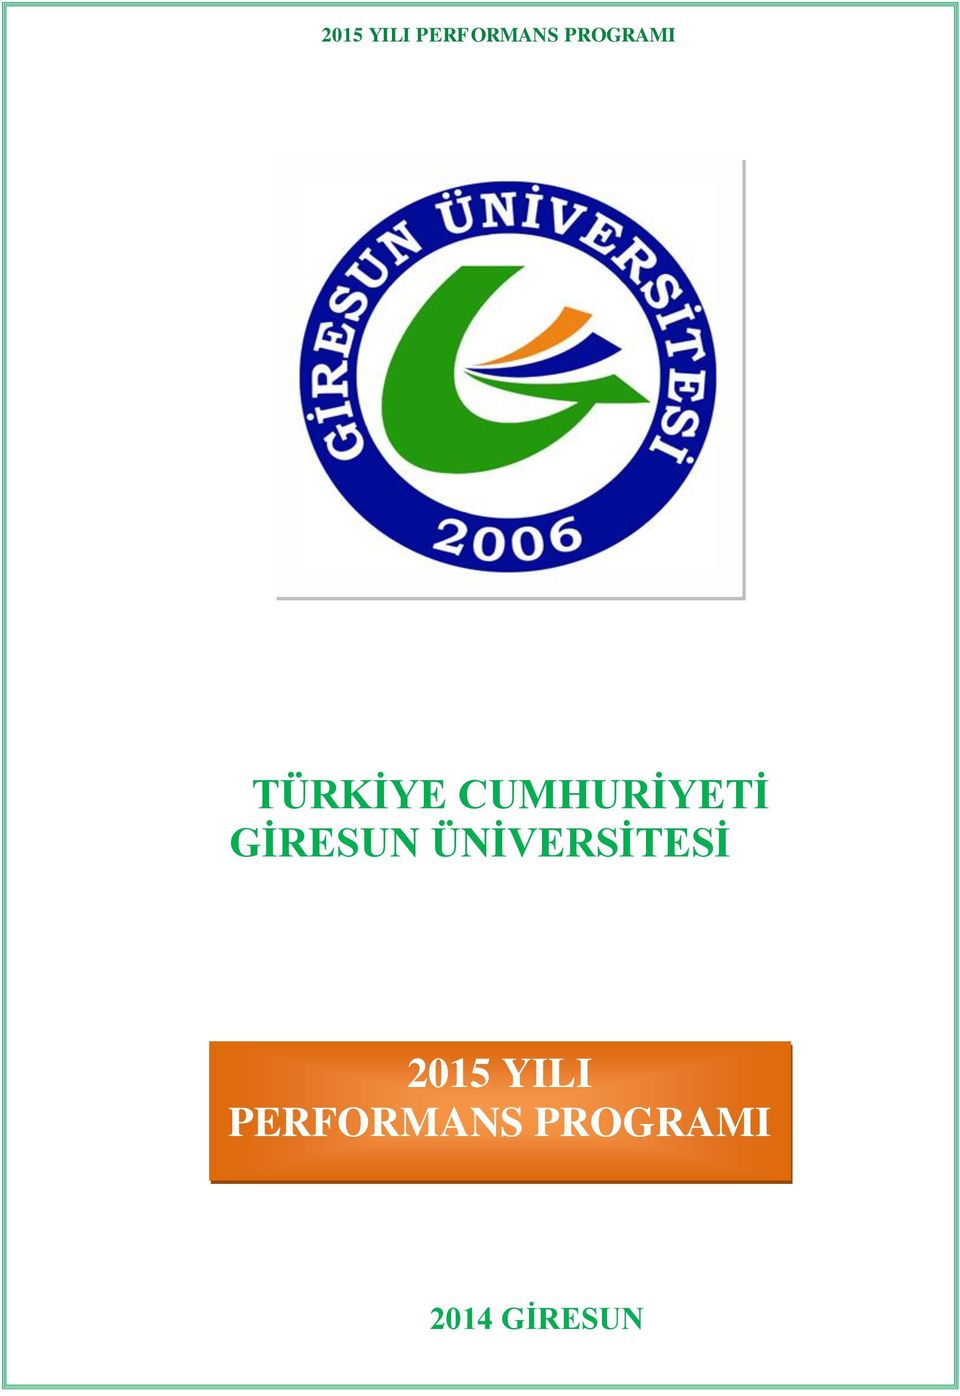 2015 YILI PERFORMANS